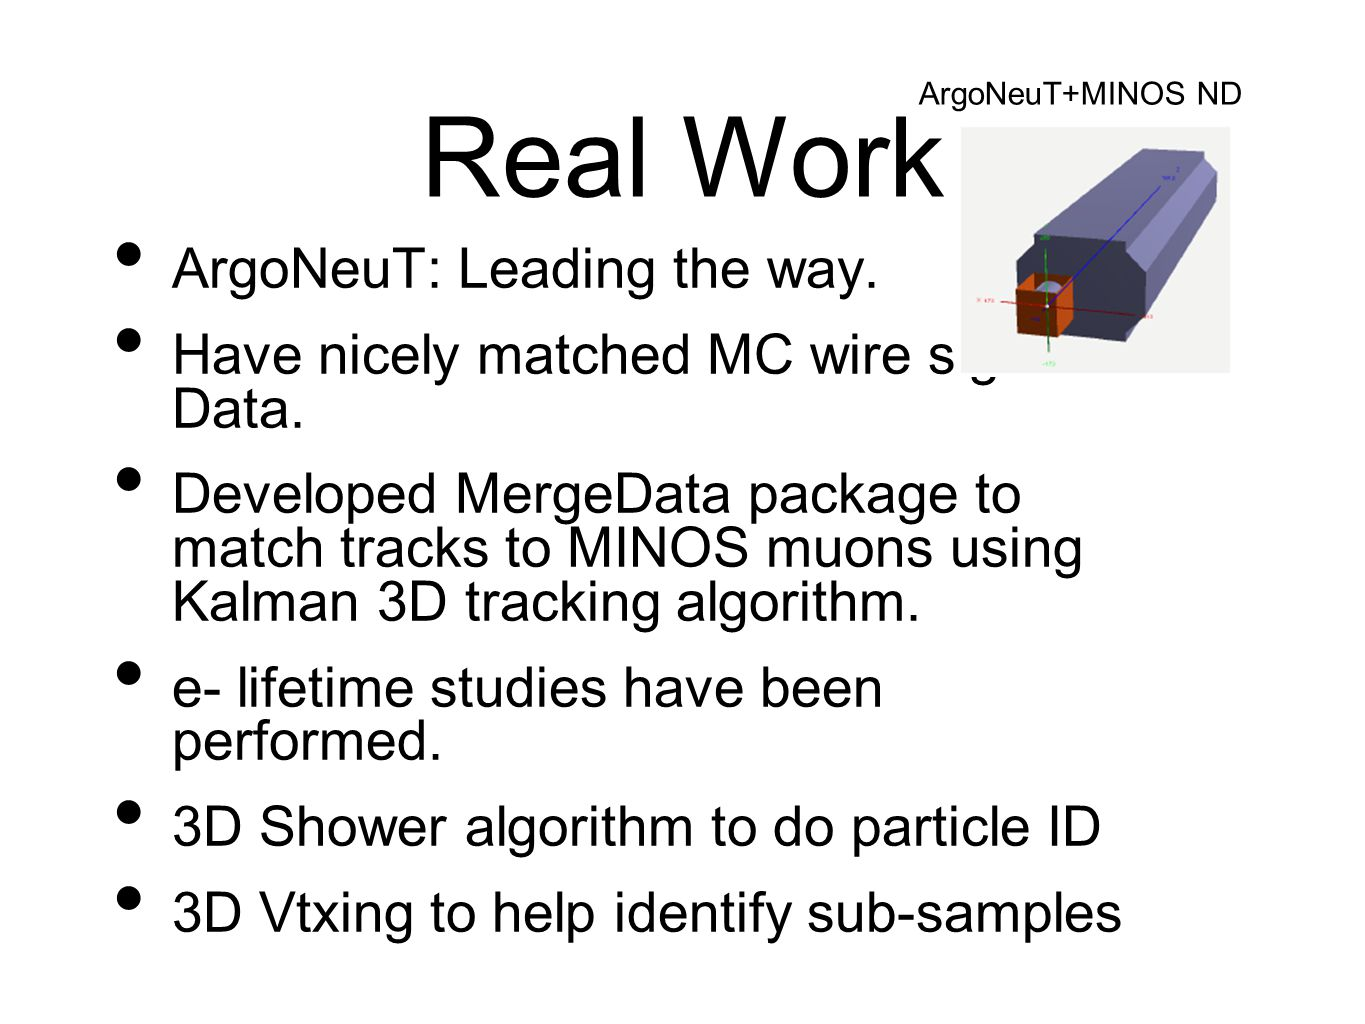 Real Work ArgoNeuT: Leading the way. Have nicely matched MC wire signals to Data.